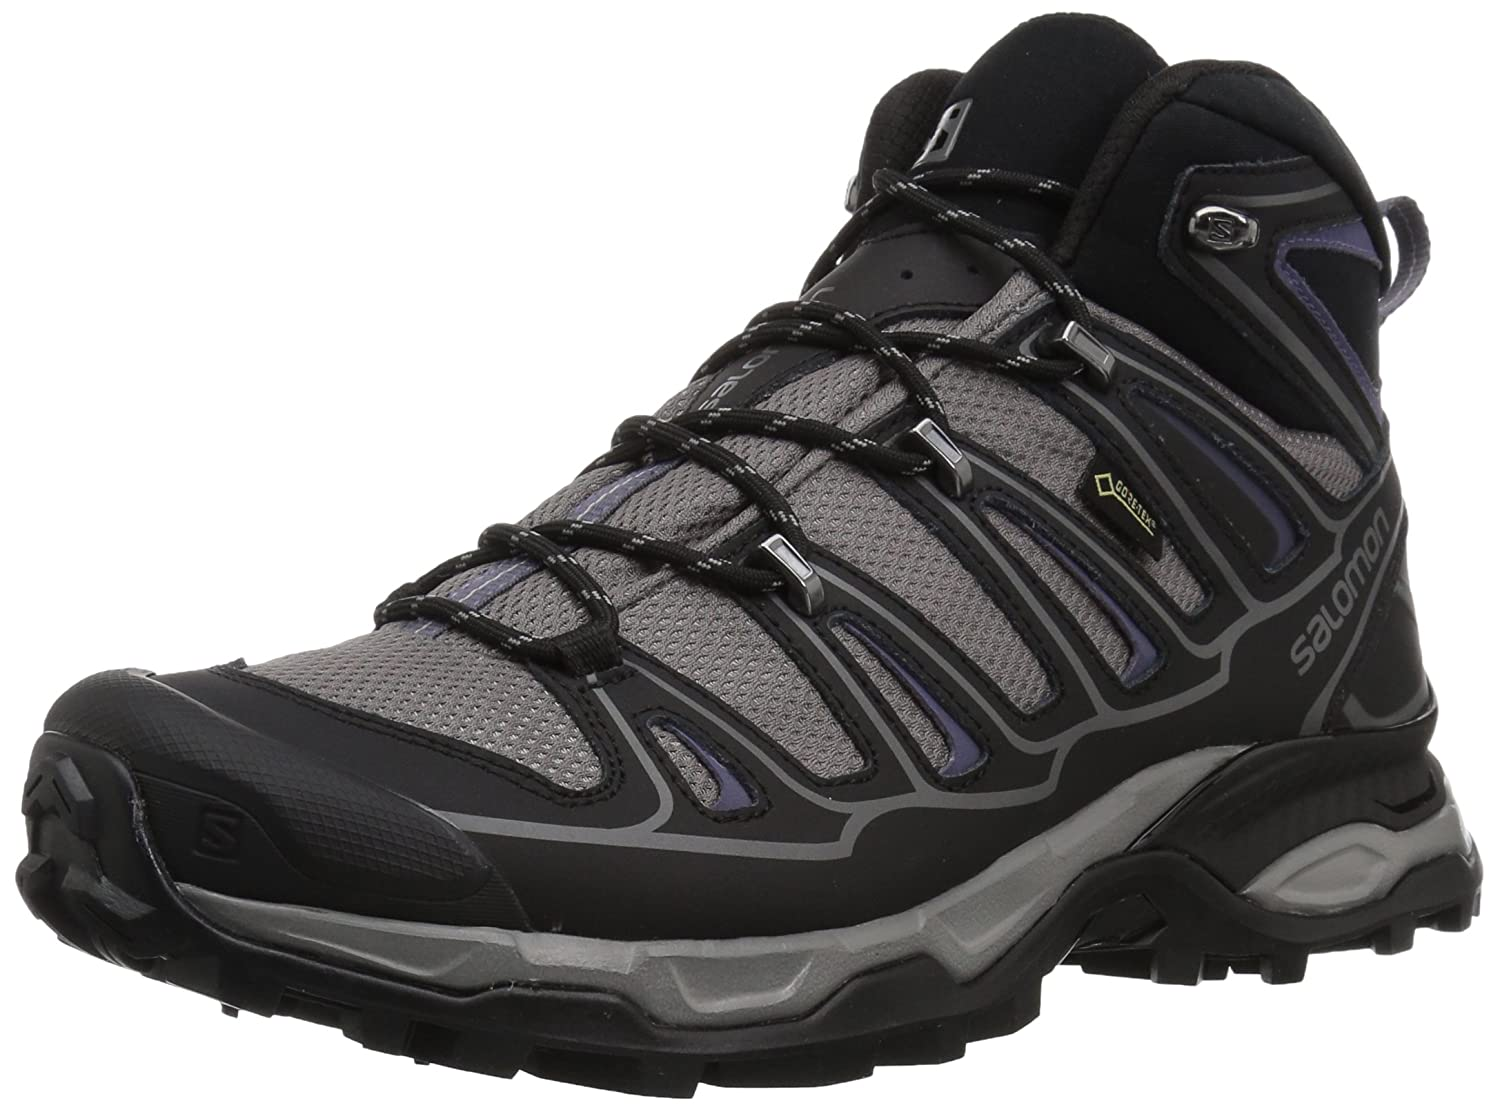 Salomon Women's X Ultra Mid 2 W Spikes GTX Snow Boot B016VWFVYU 6 B(M) US|Detroit/Black/Artist Grey-x